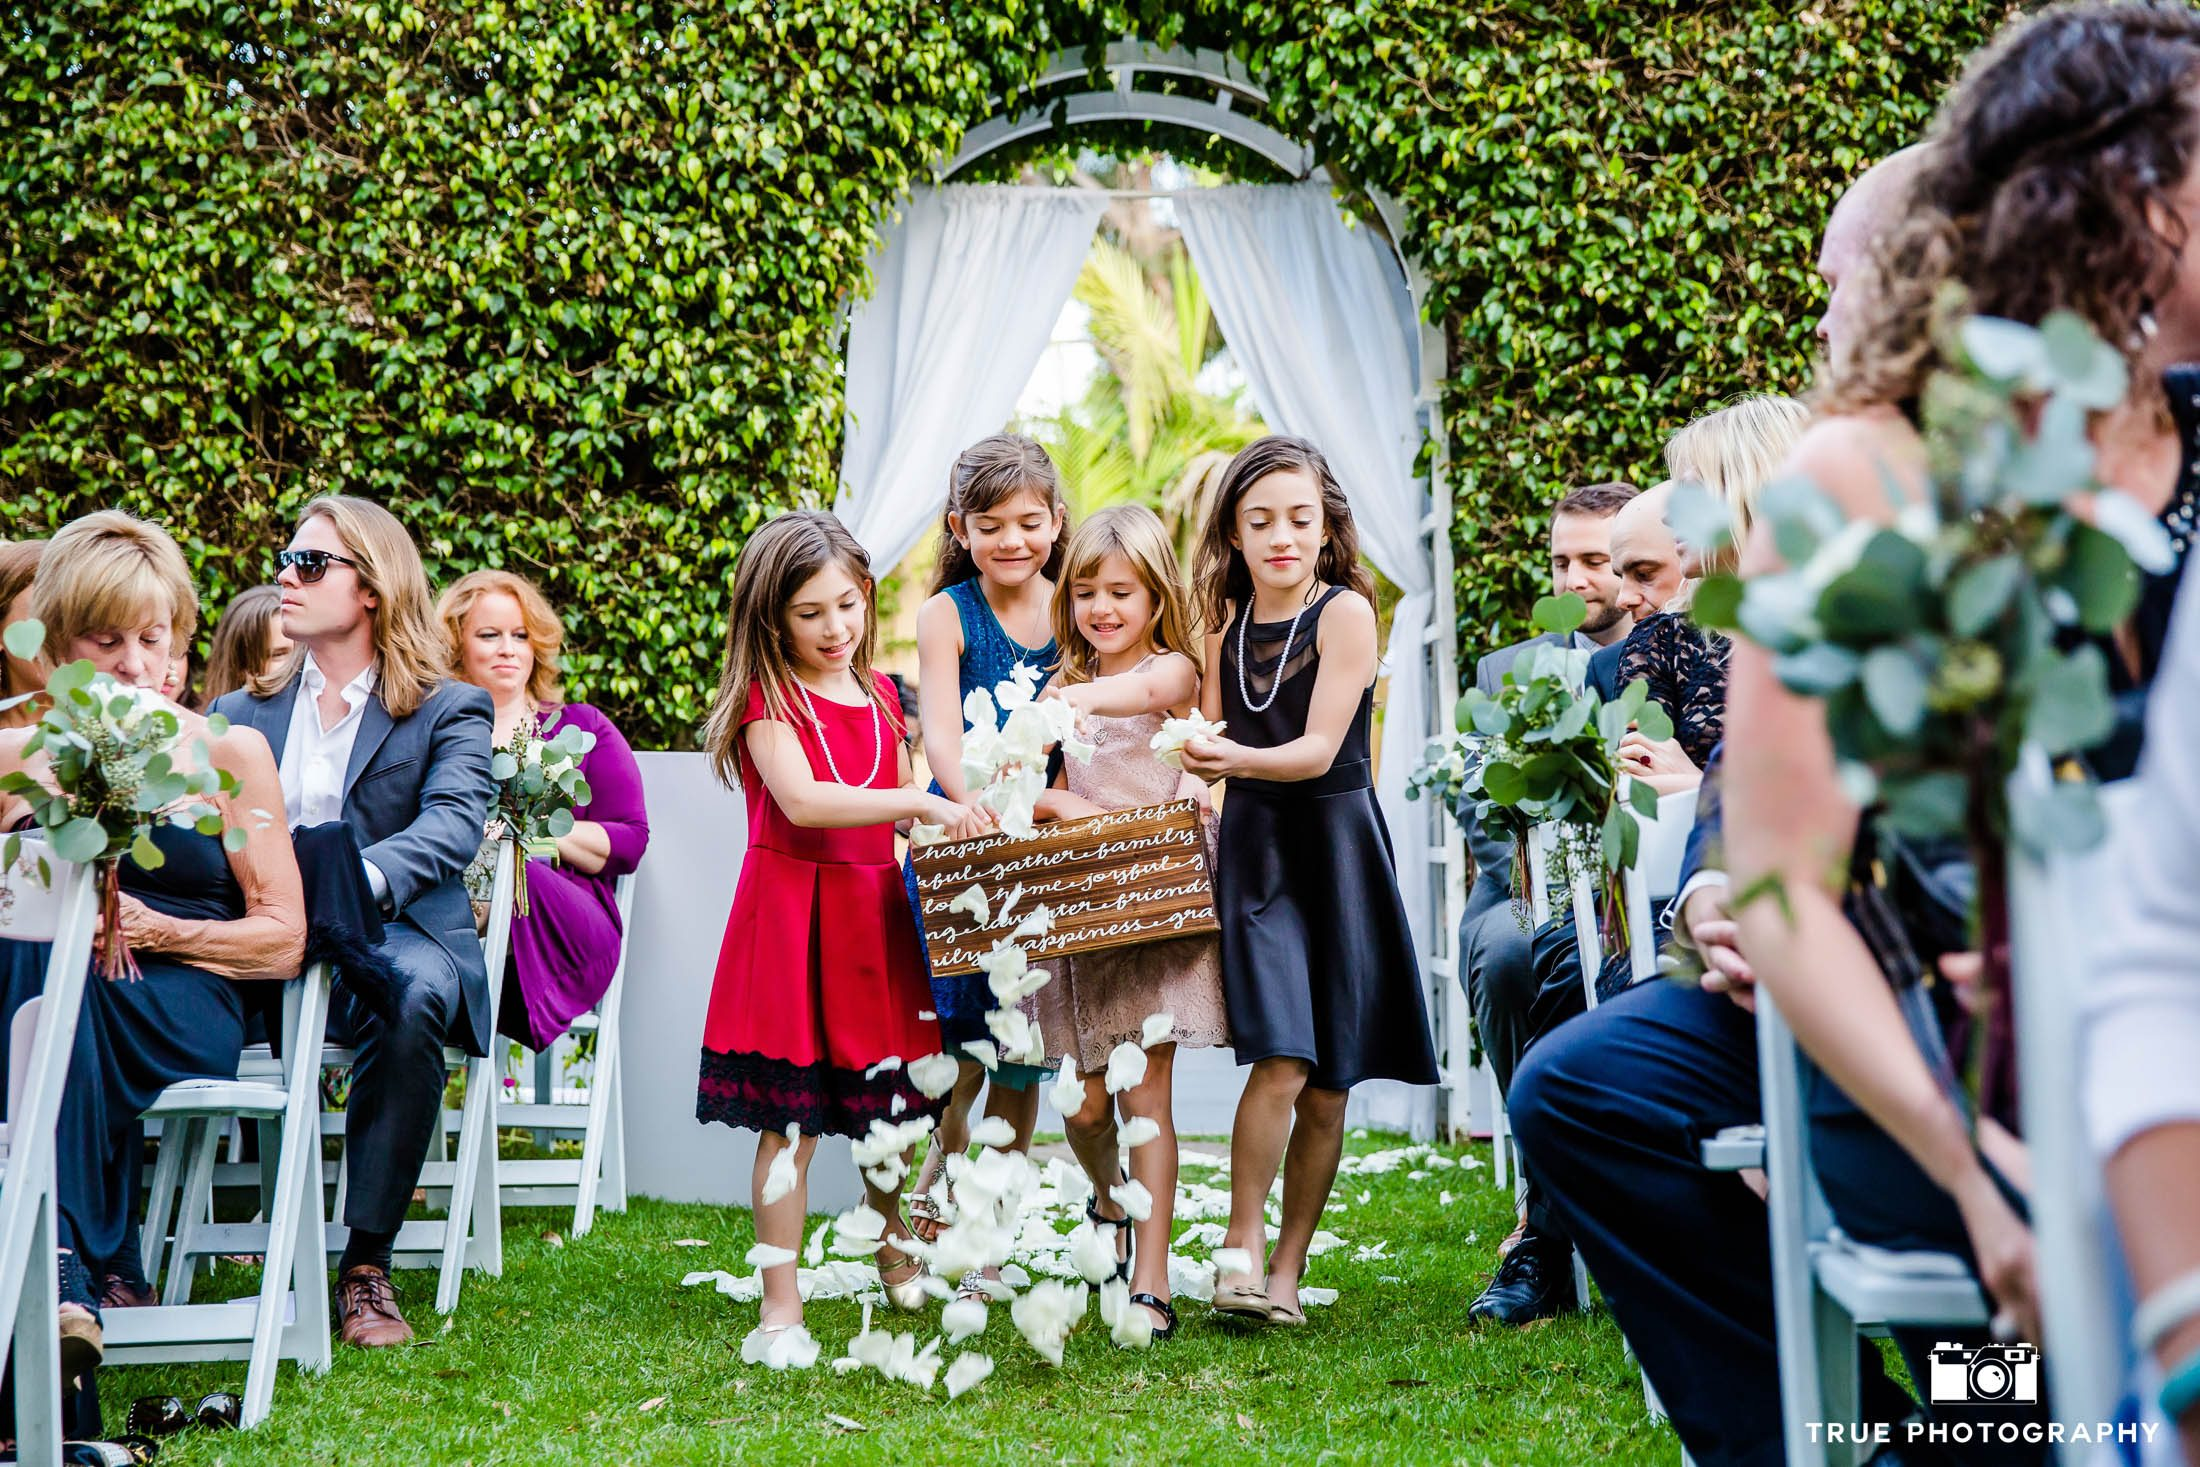 Cute flowergirls throw flowers down aisle at wedding